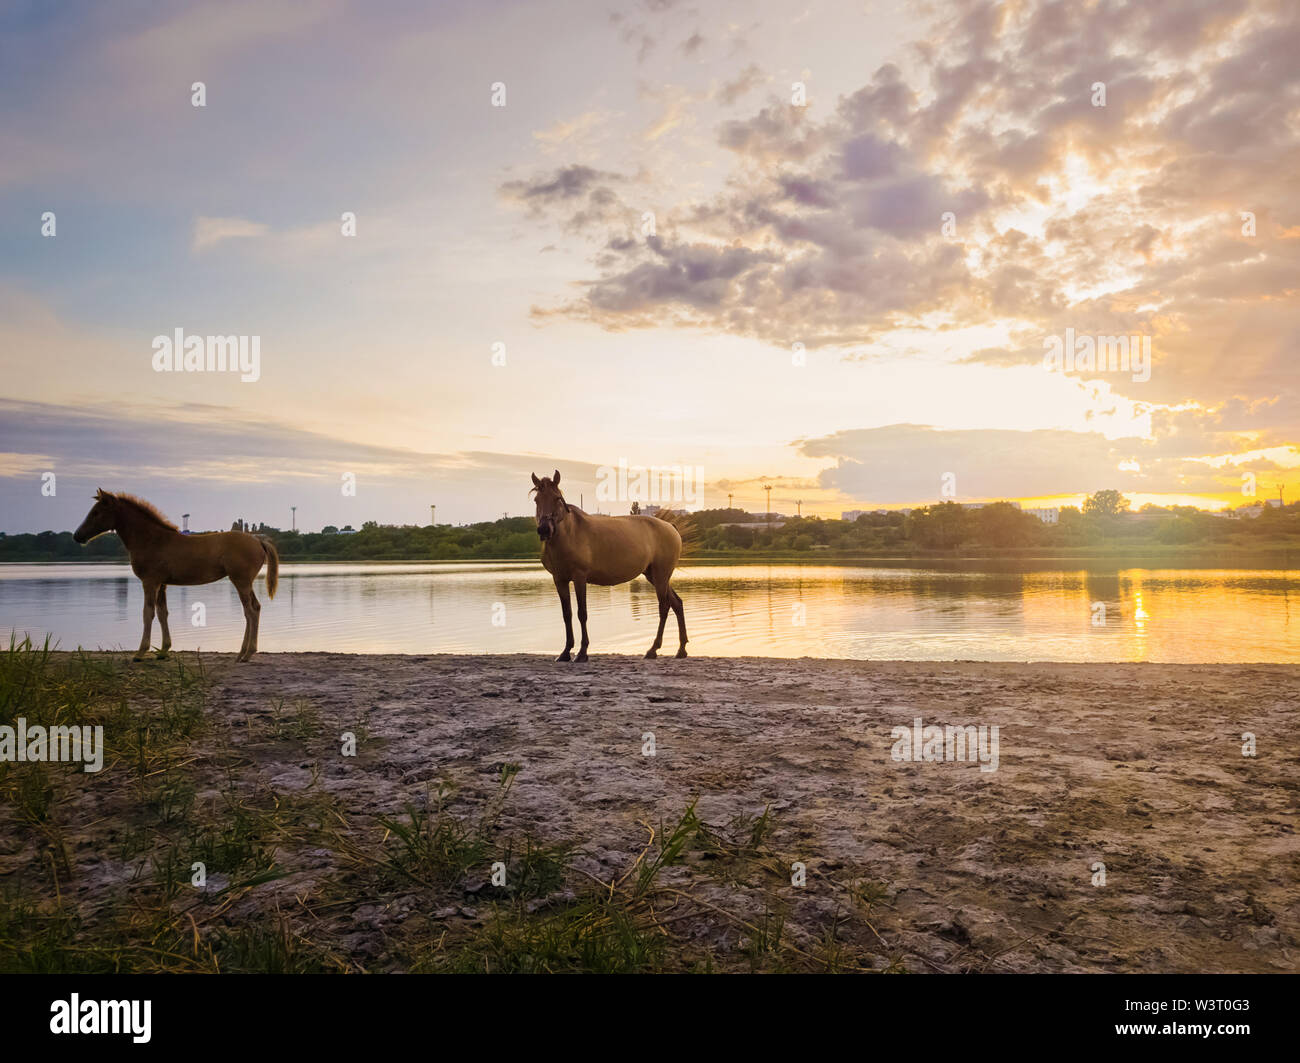 Two brown horses, young foal and his mother mare, standing near pond, watering over sunset background with reflection on the lake surface. - Stock Image